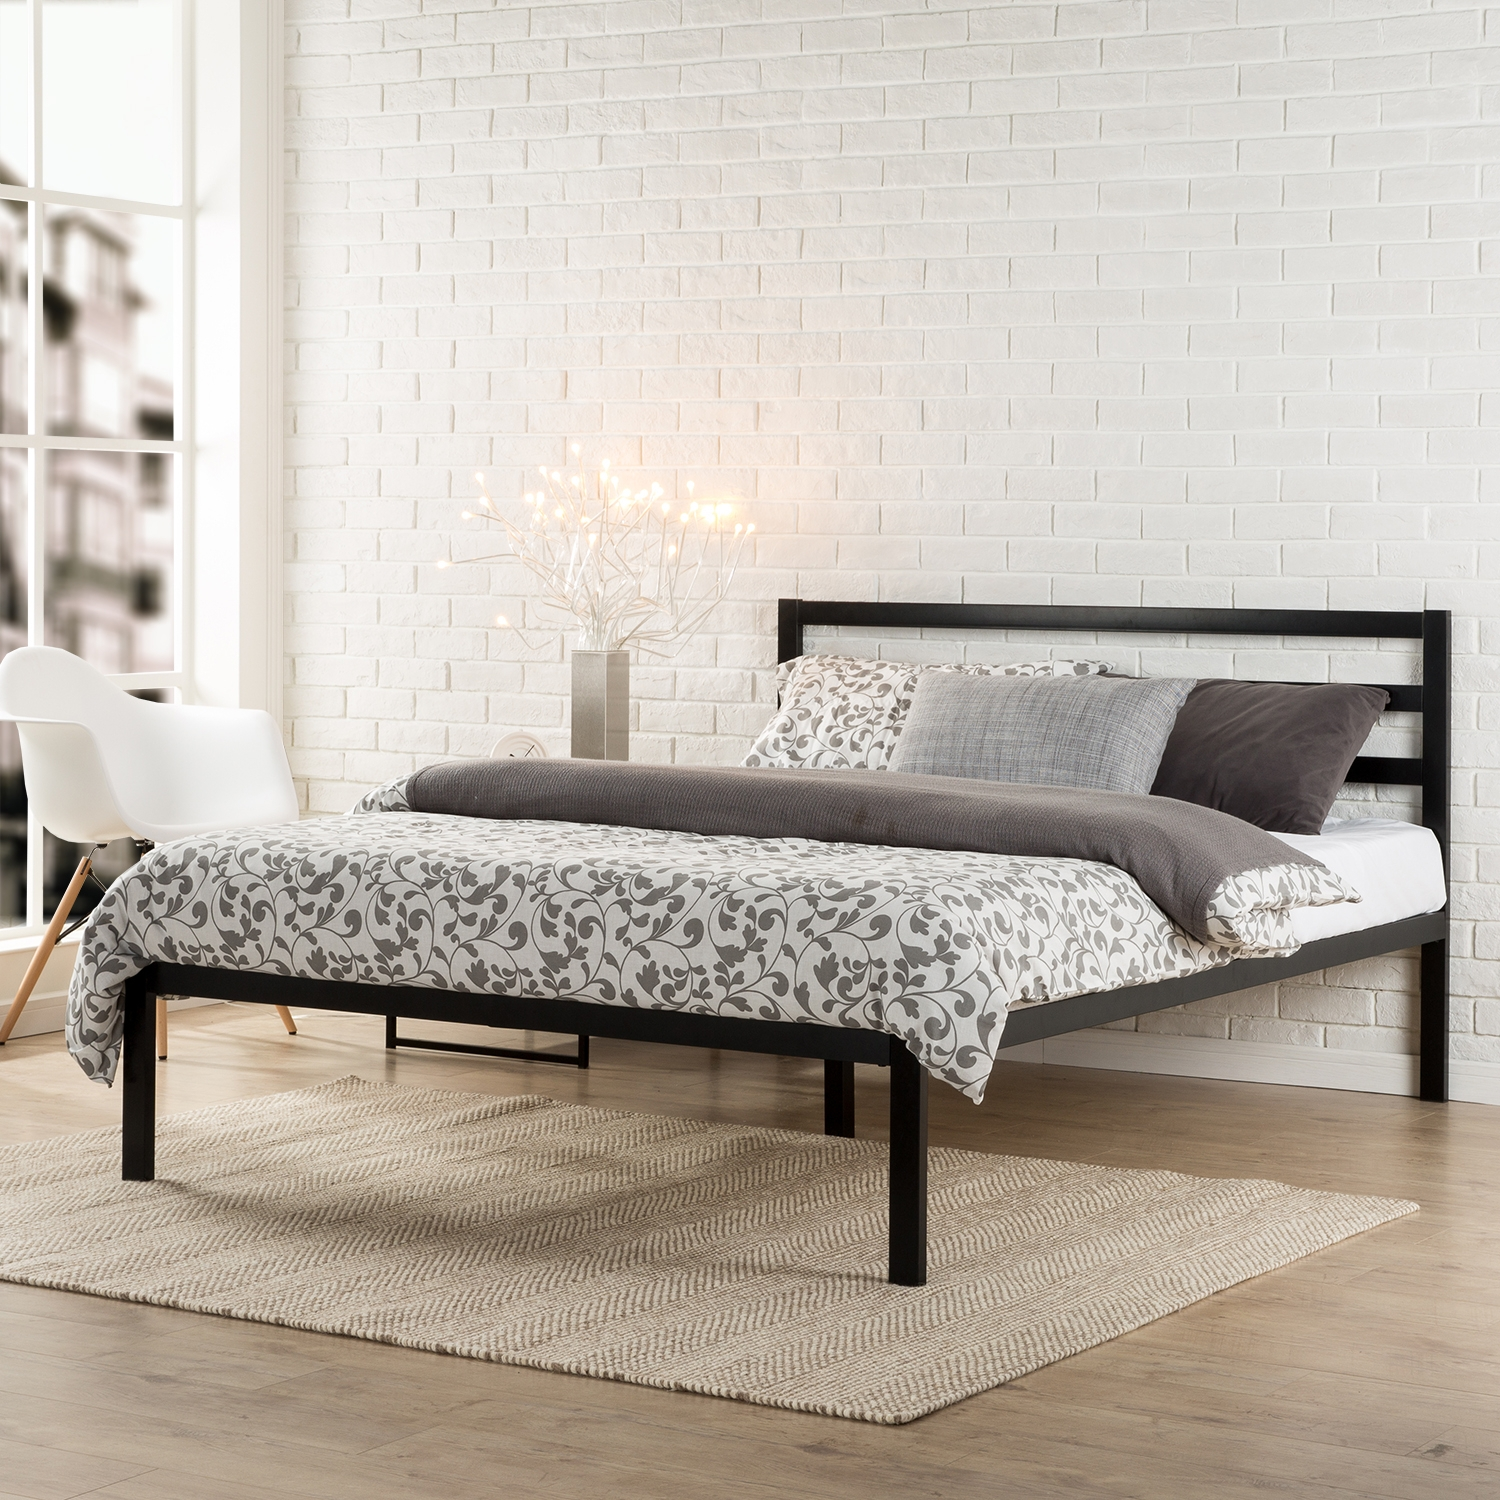 Sears Platform Bed Frame Queen